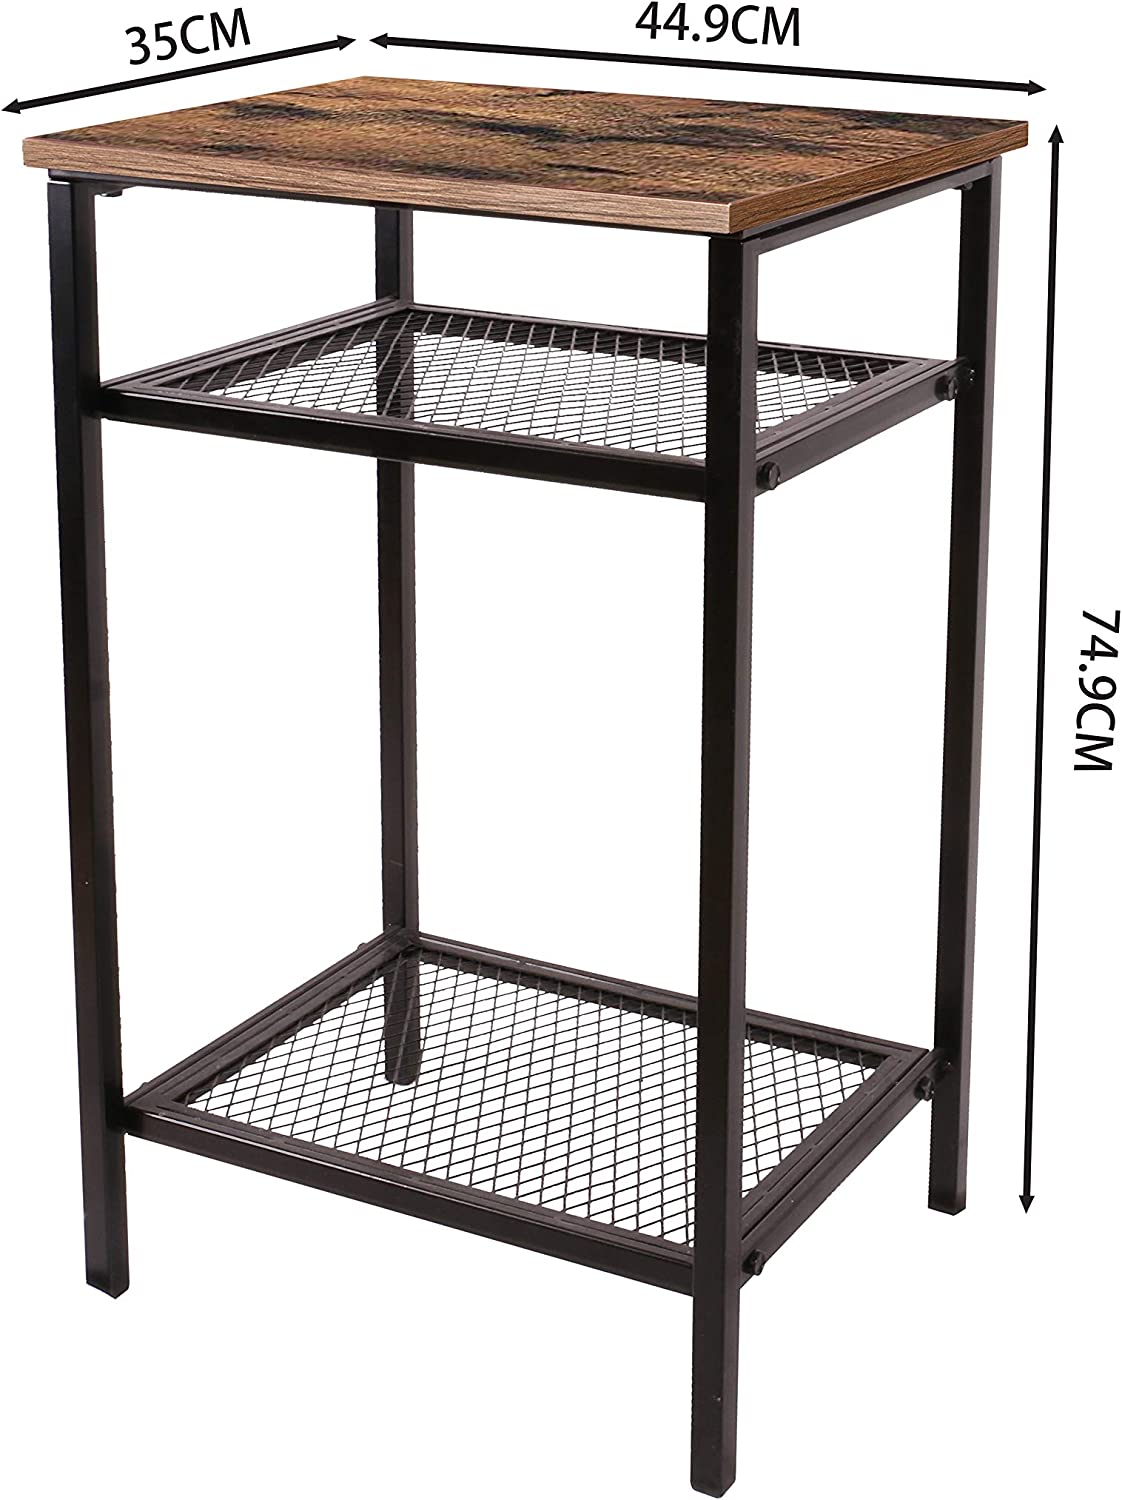 Bedroom,Rustic Brown Iron shelf Narrow and Space Saving in Living Room End Table YOUKE Industrial Side Table 45 * 35 * 75 cm Easy Assembly,Bedside Table With Mesh Shelf